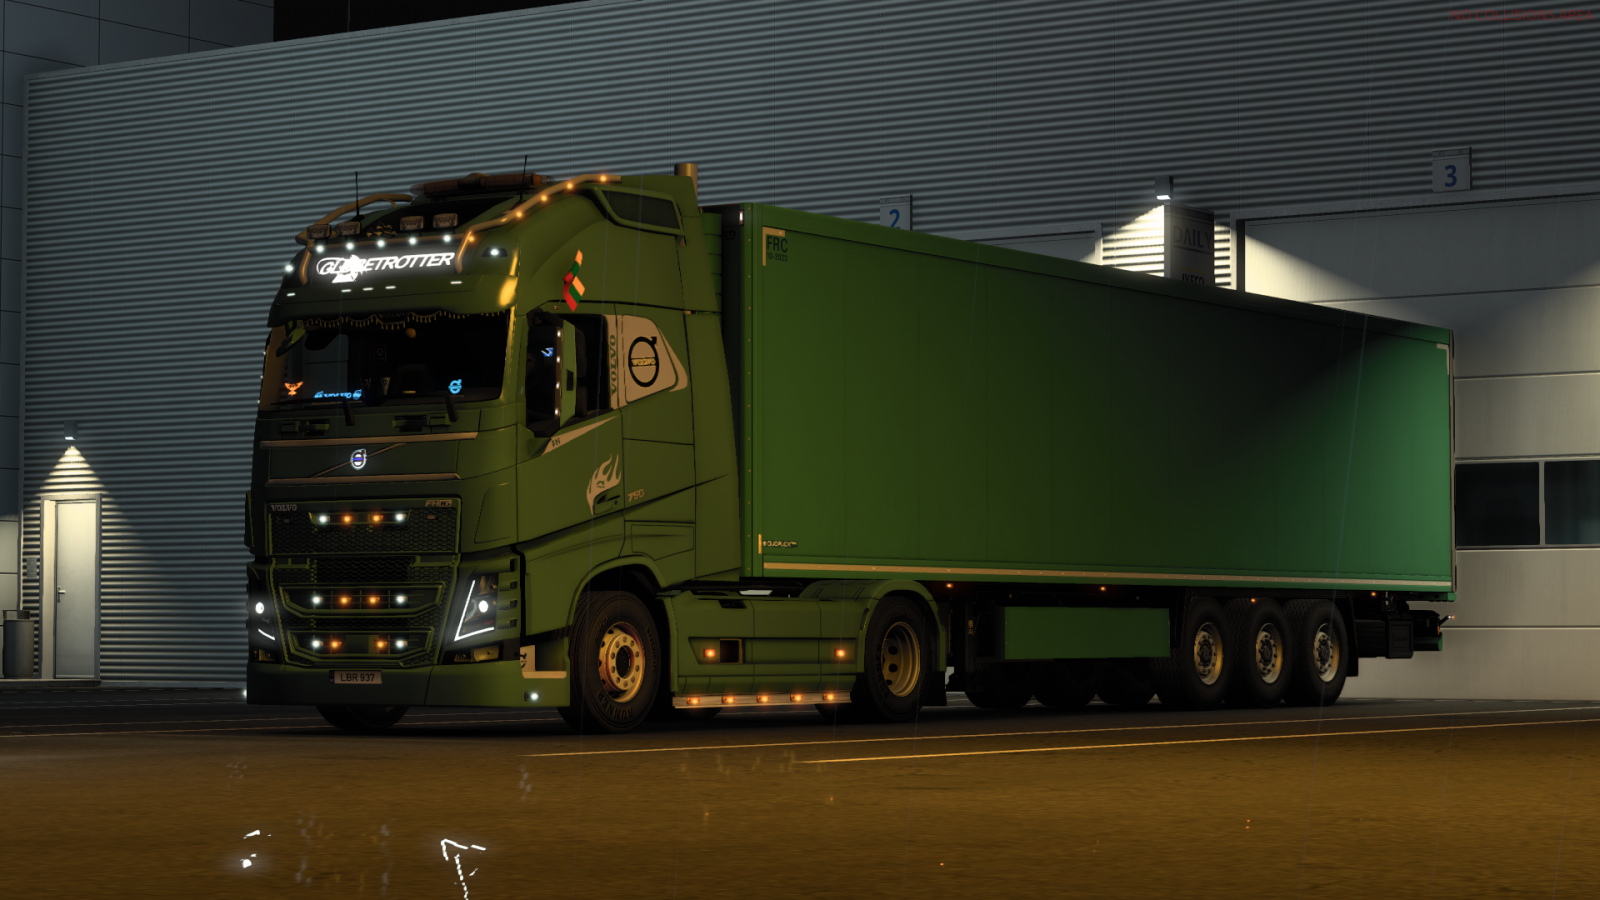 ets2_20210608_142342_00.png